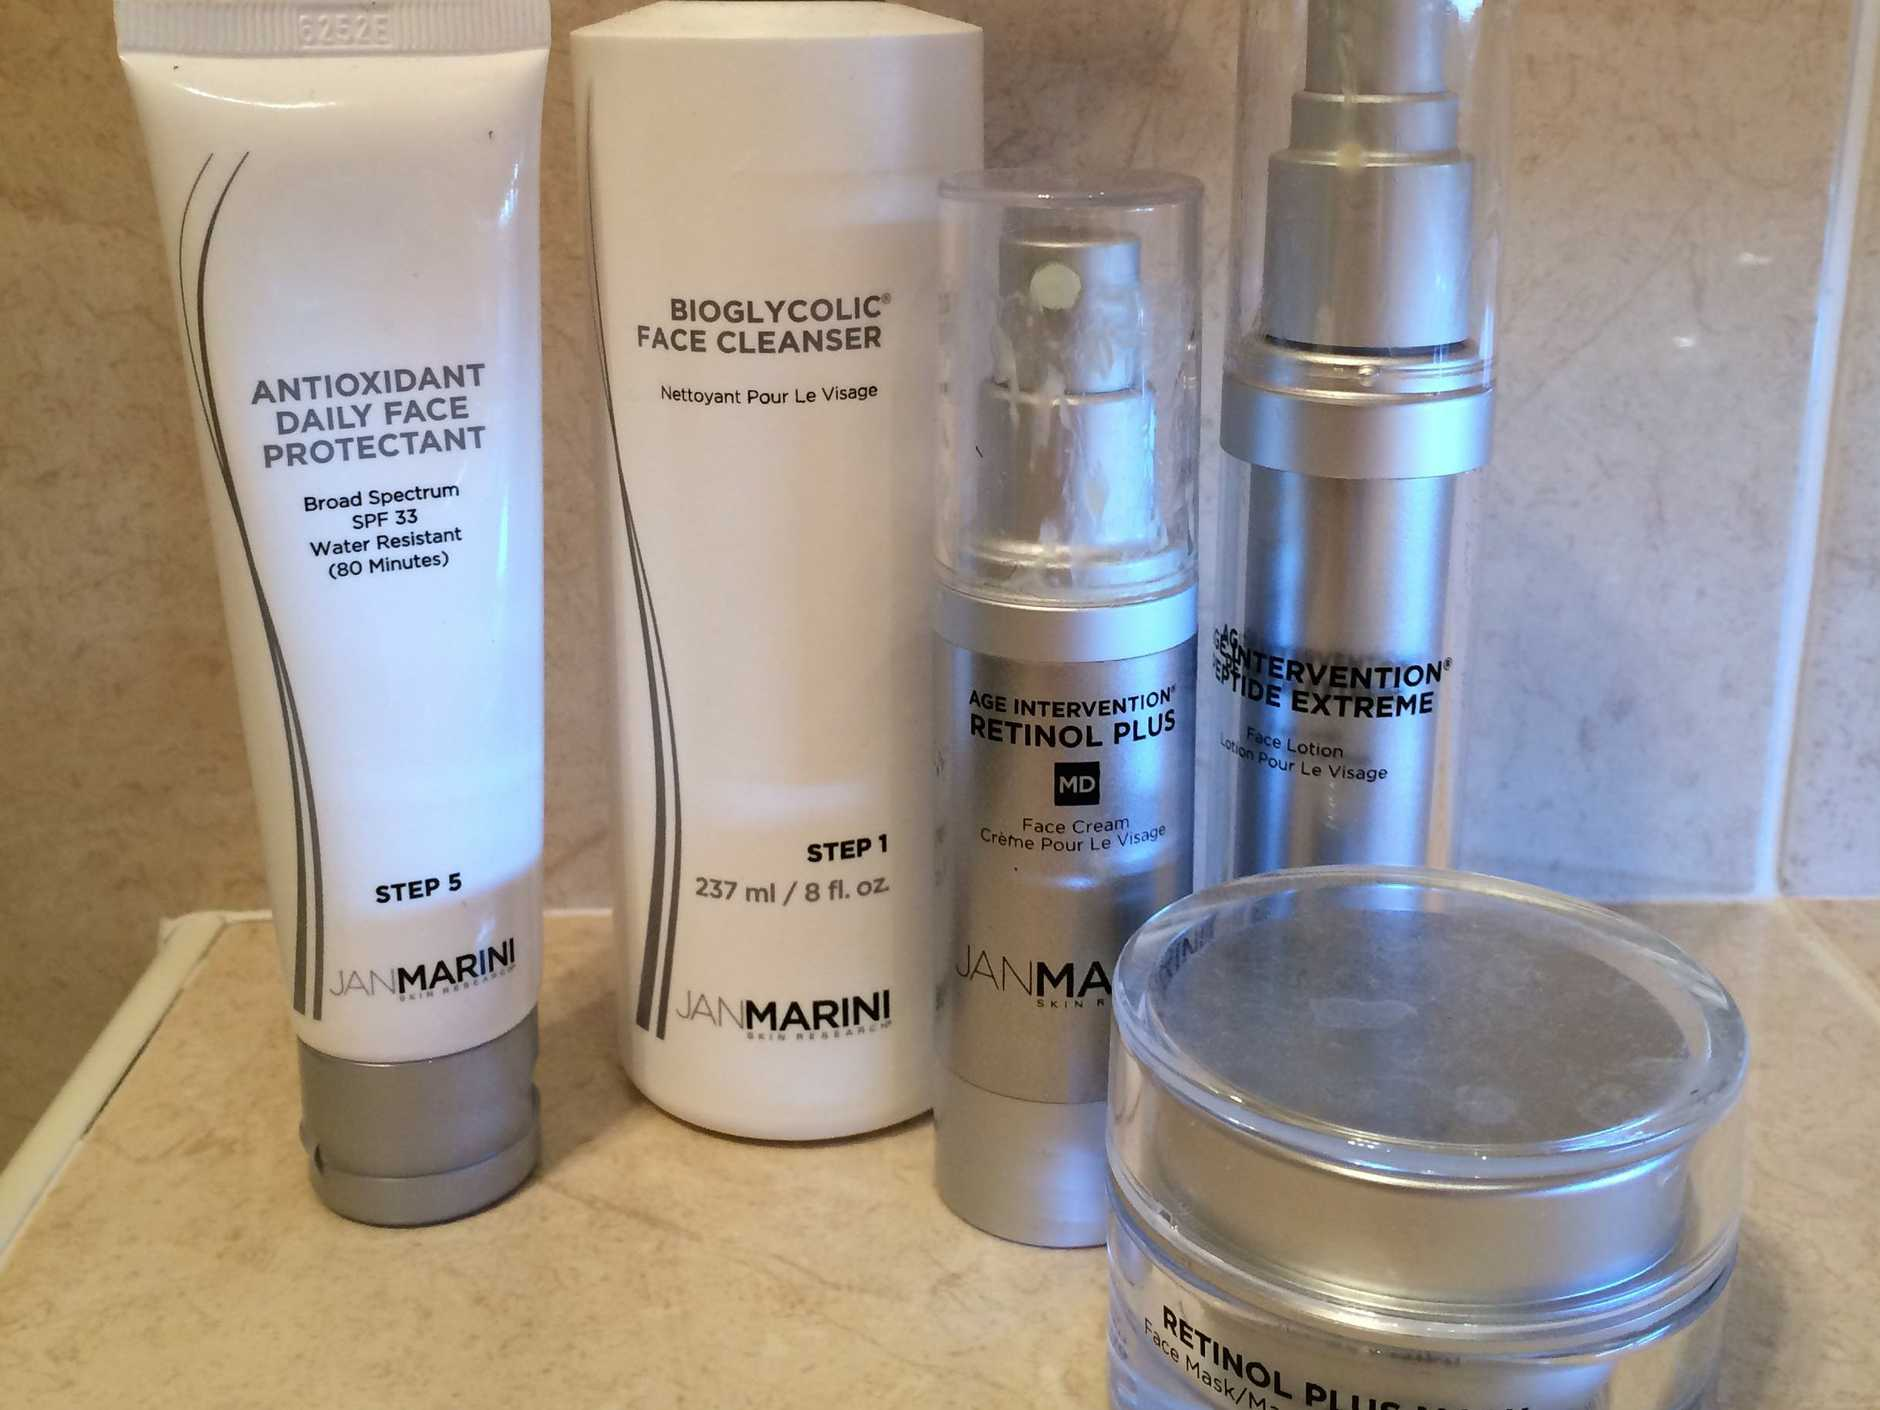 My Jan Marini products from Kelly George Aesthetics